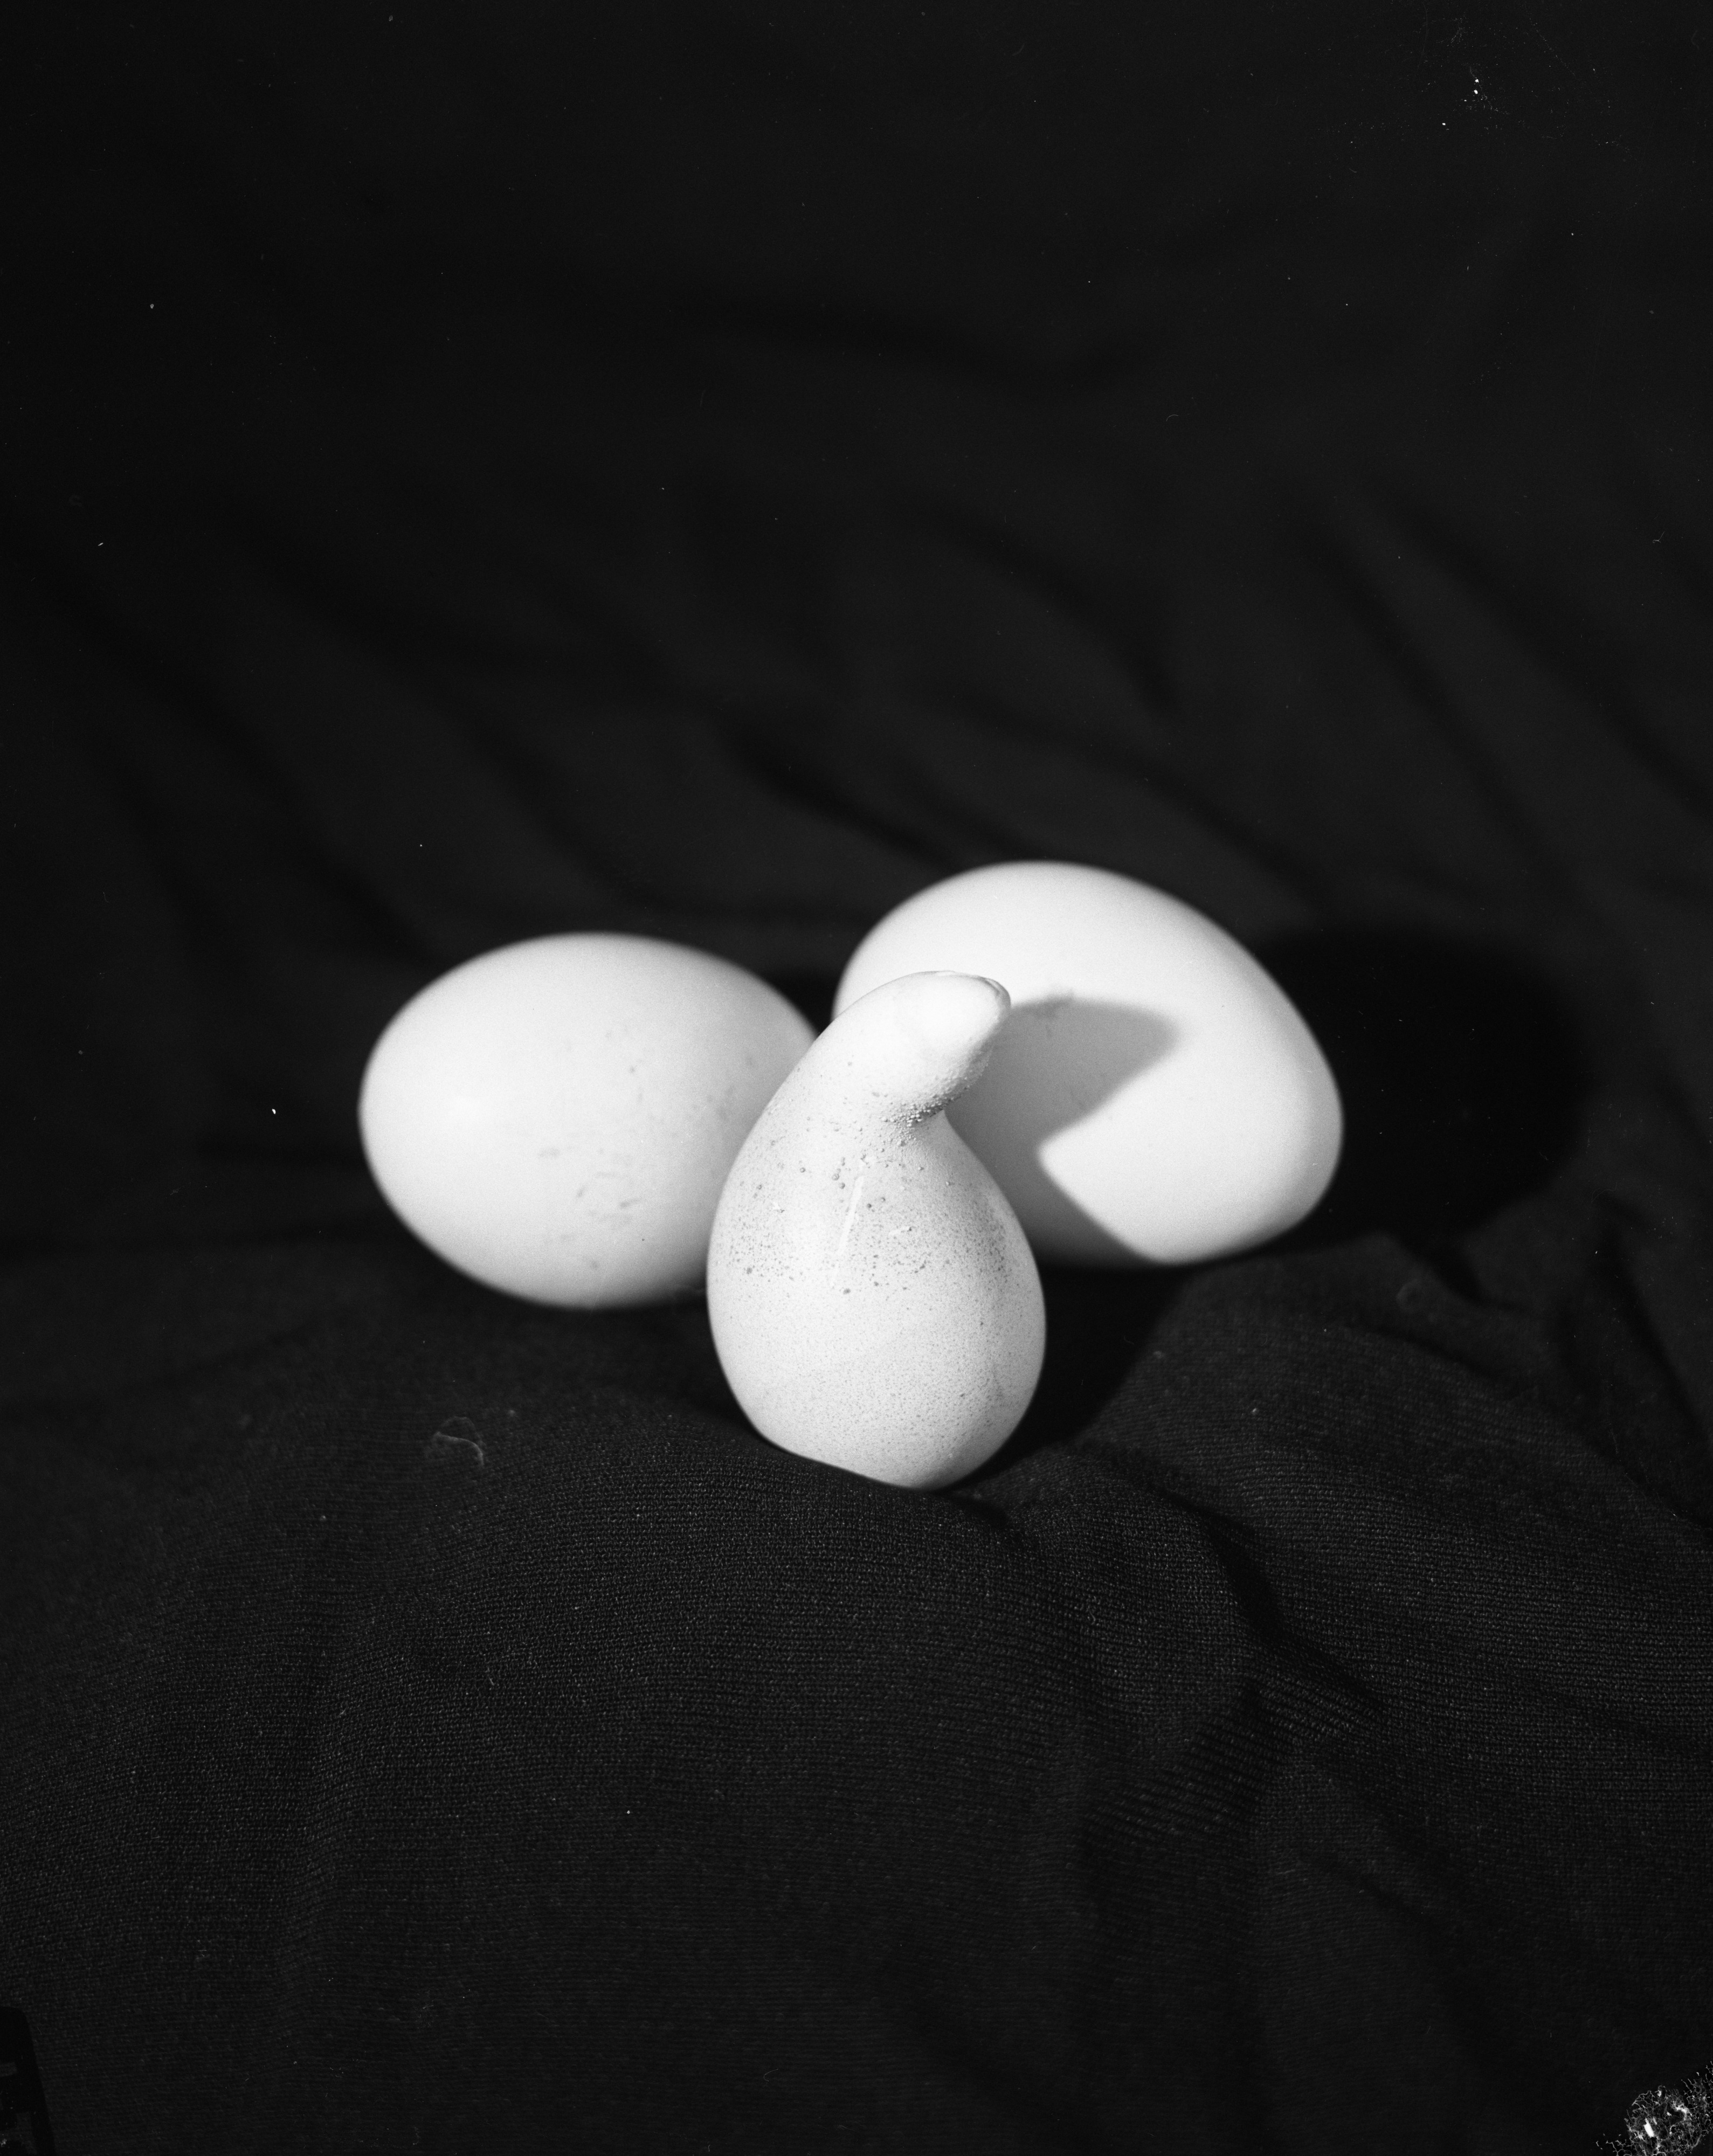 Oddly Shaped Egg, October 1959 image